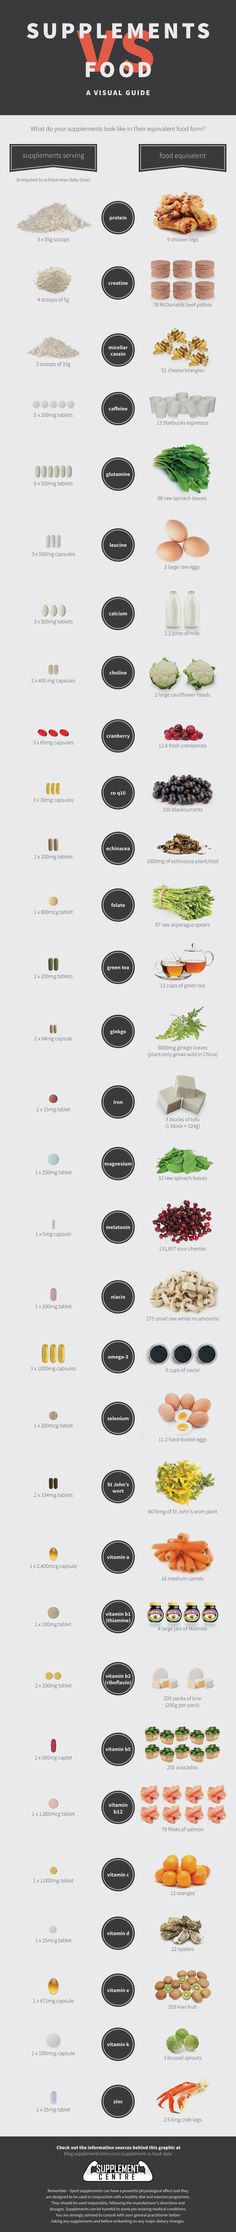 #INFOgraphic > Food Instead of Supplements:   > http://infographicsmania.com/food-instead-of-supplements/?utm_source=Pinterest&utm_medium=INFOGRAPHICSMANIA&utm_campaign=SNAP